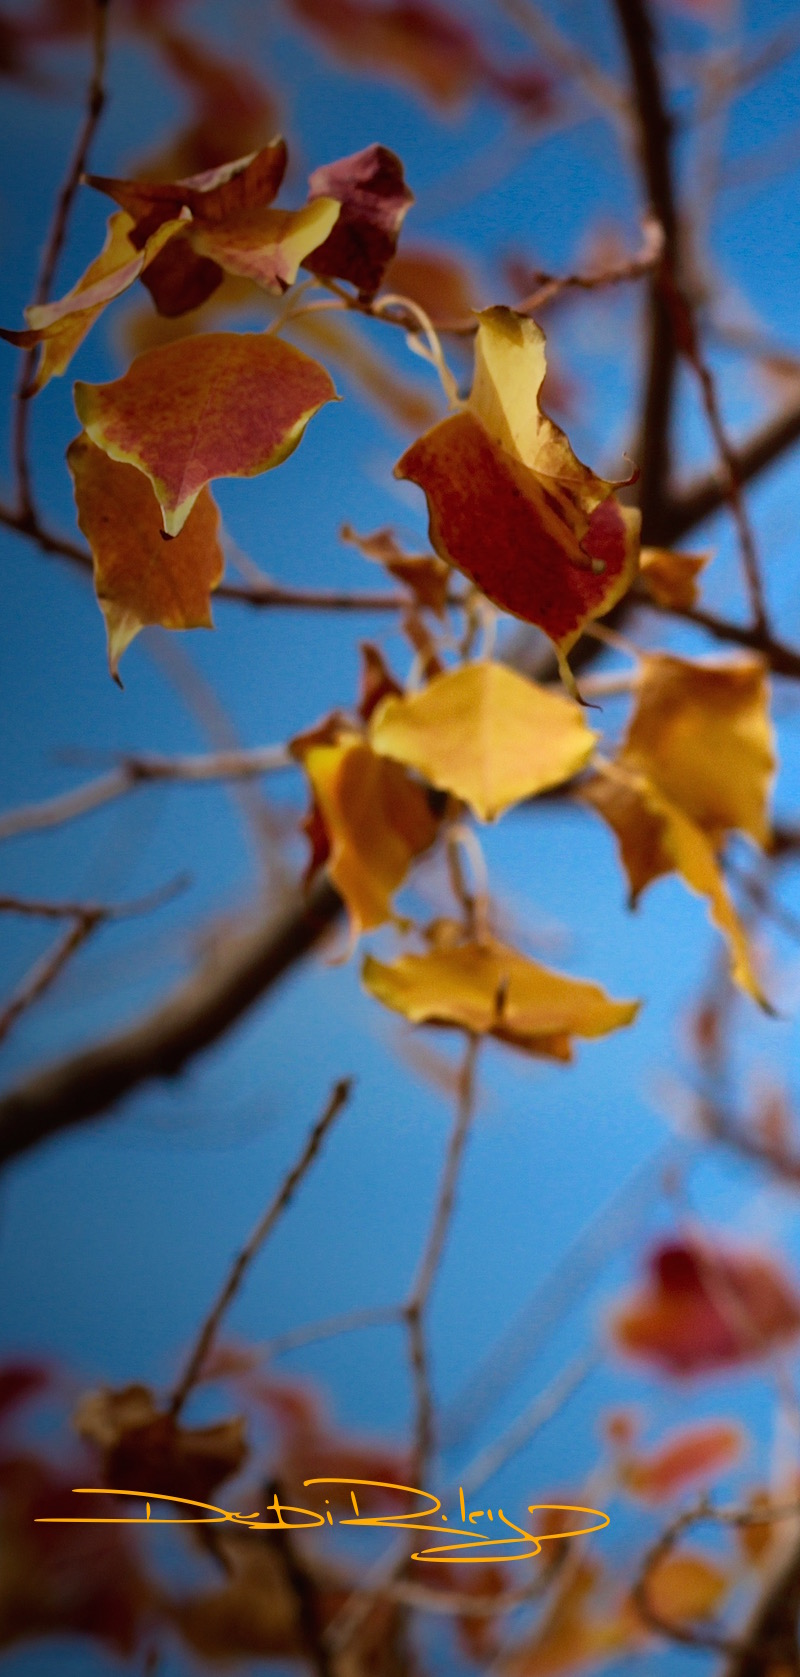 Autumn Leaves of gold, orange, red